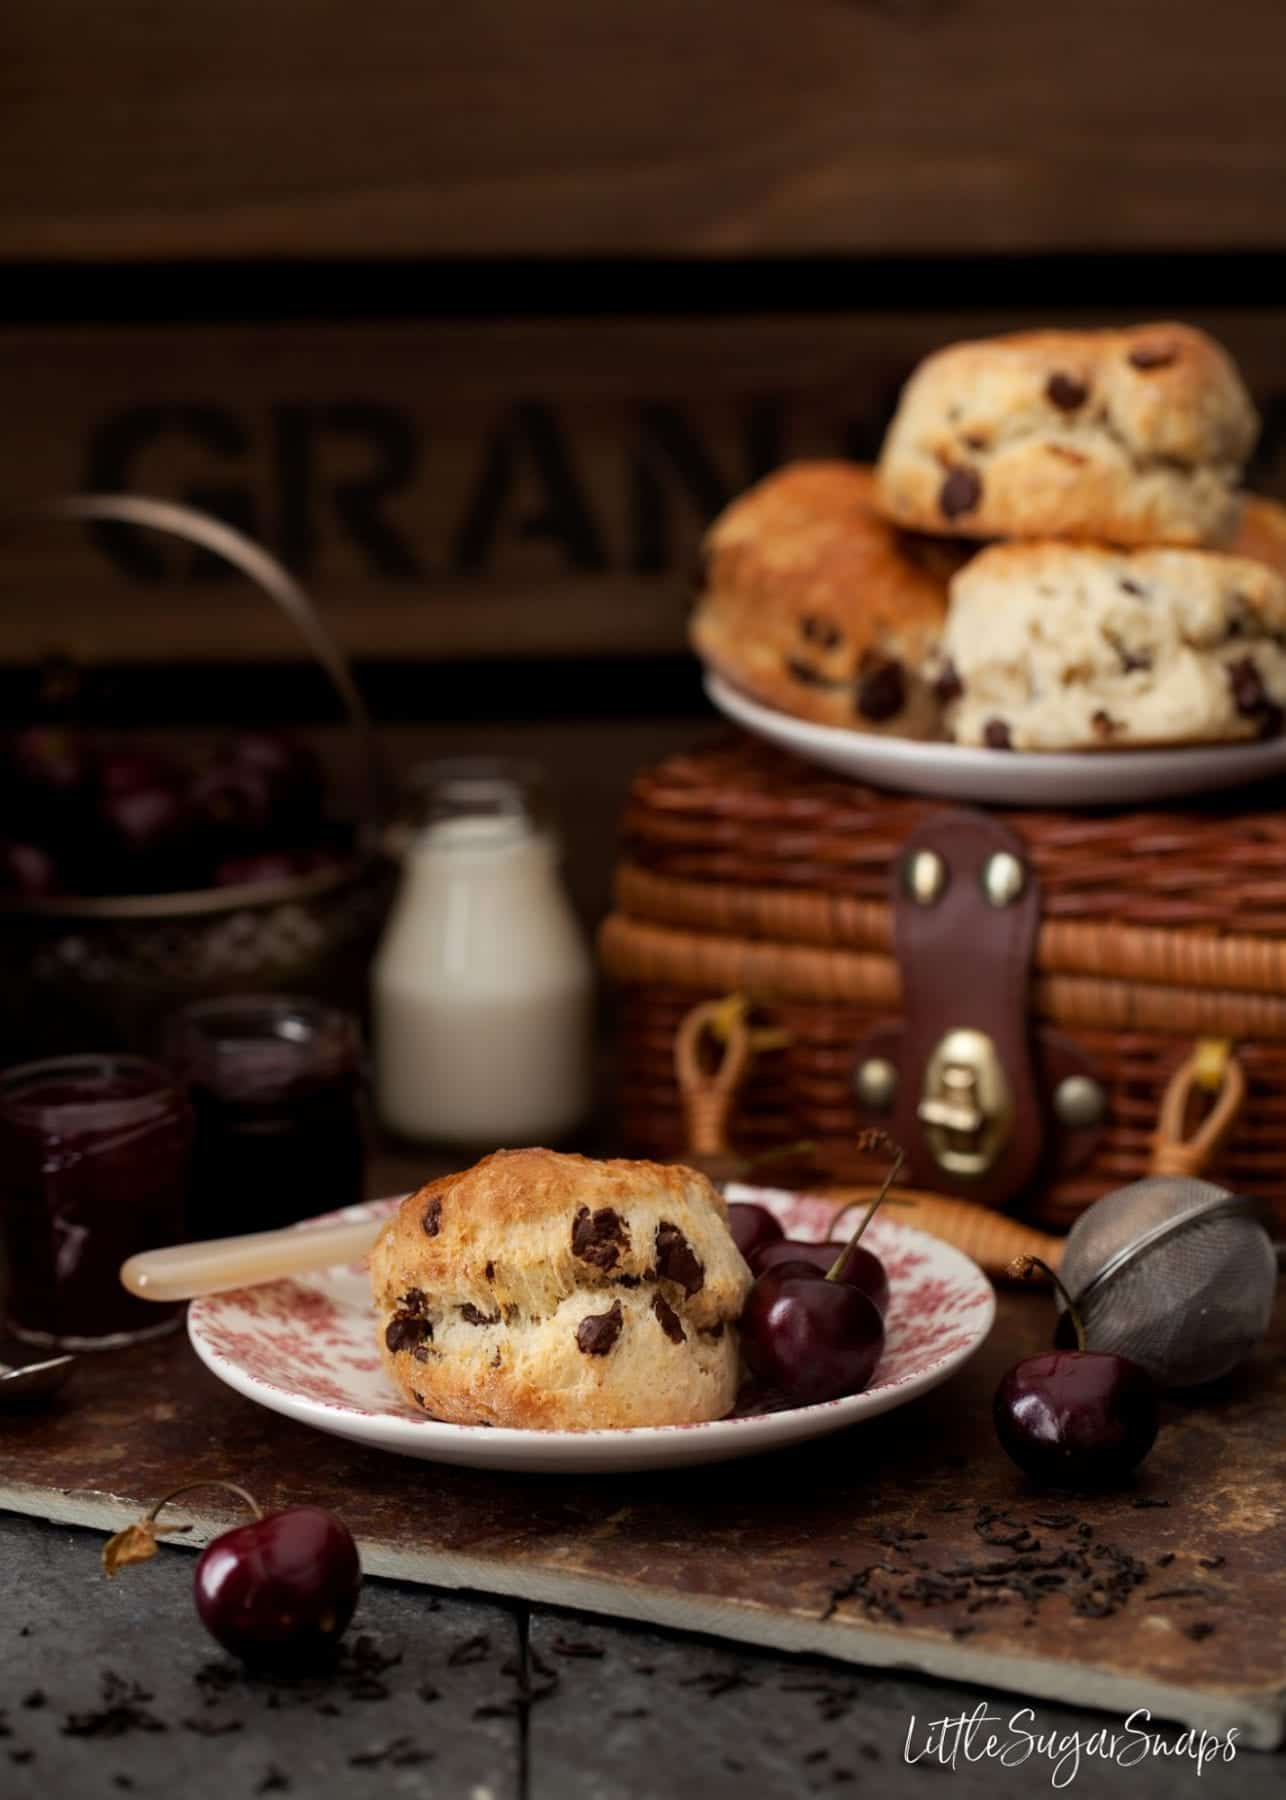 A chocolate chip scone on a plate with fresh cherries.